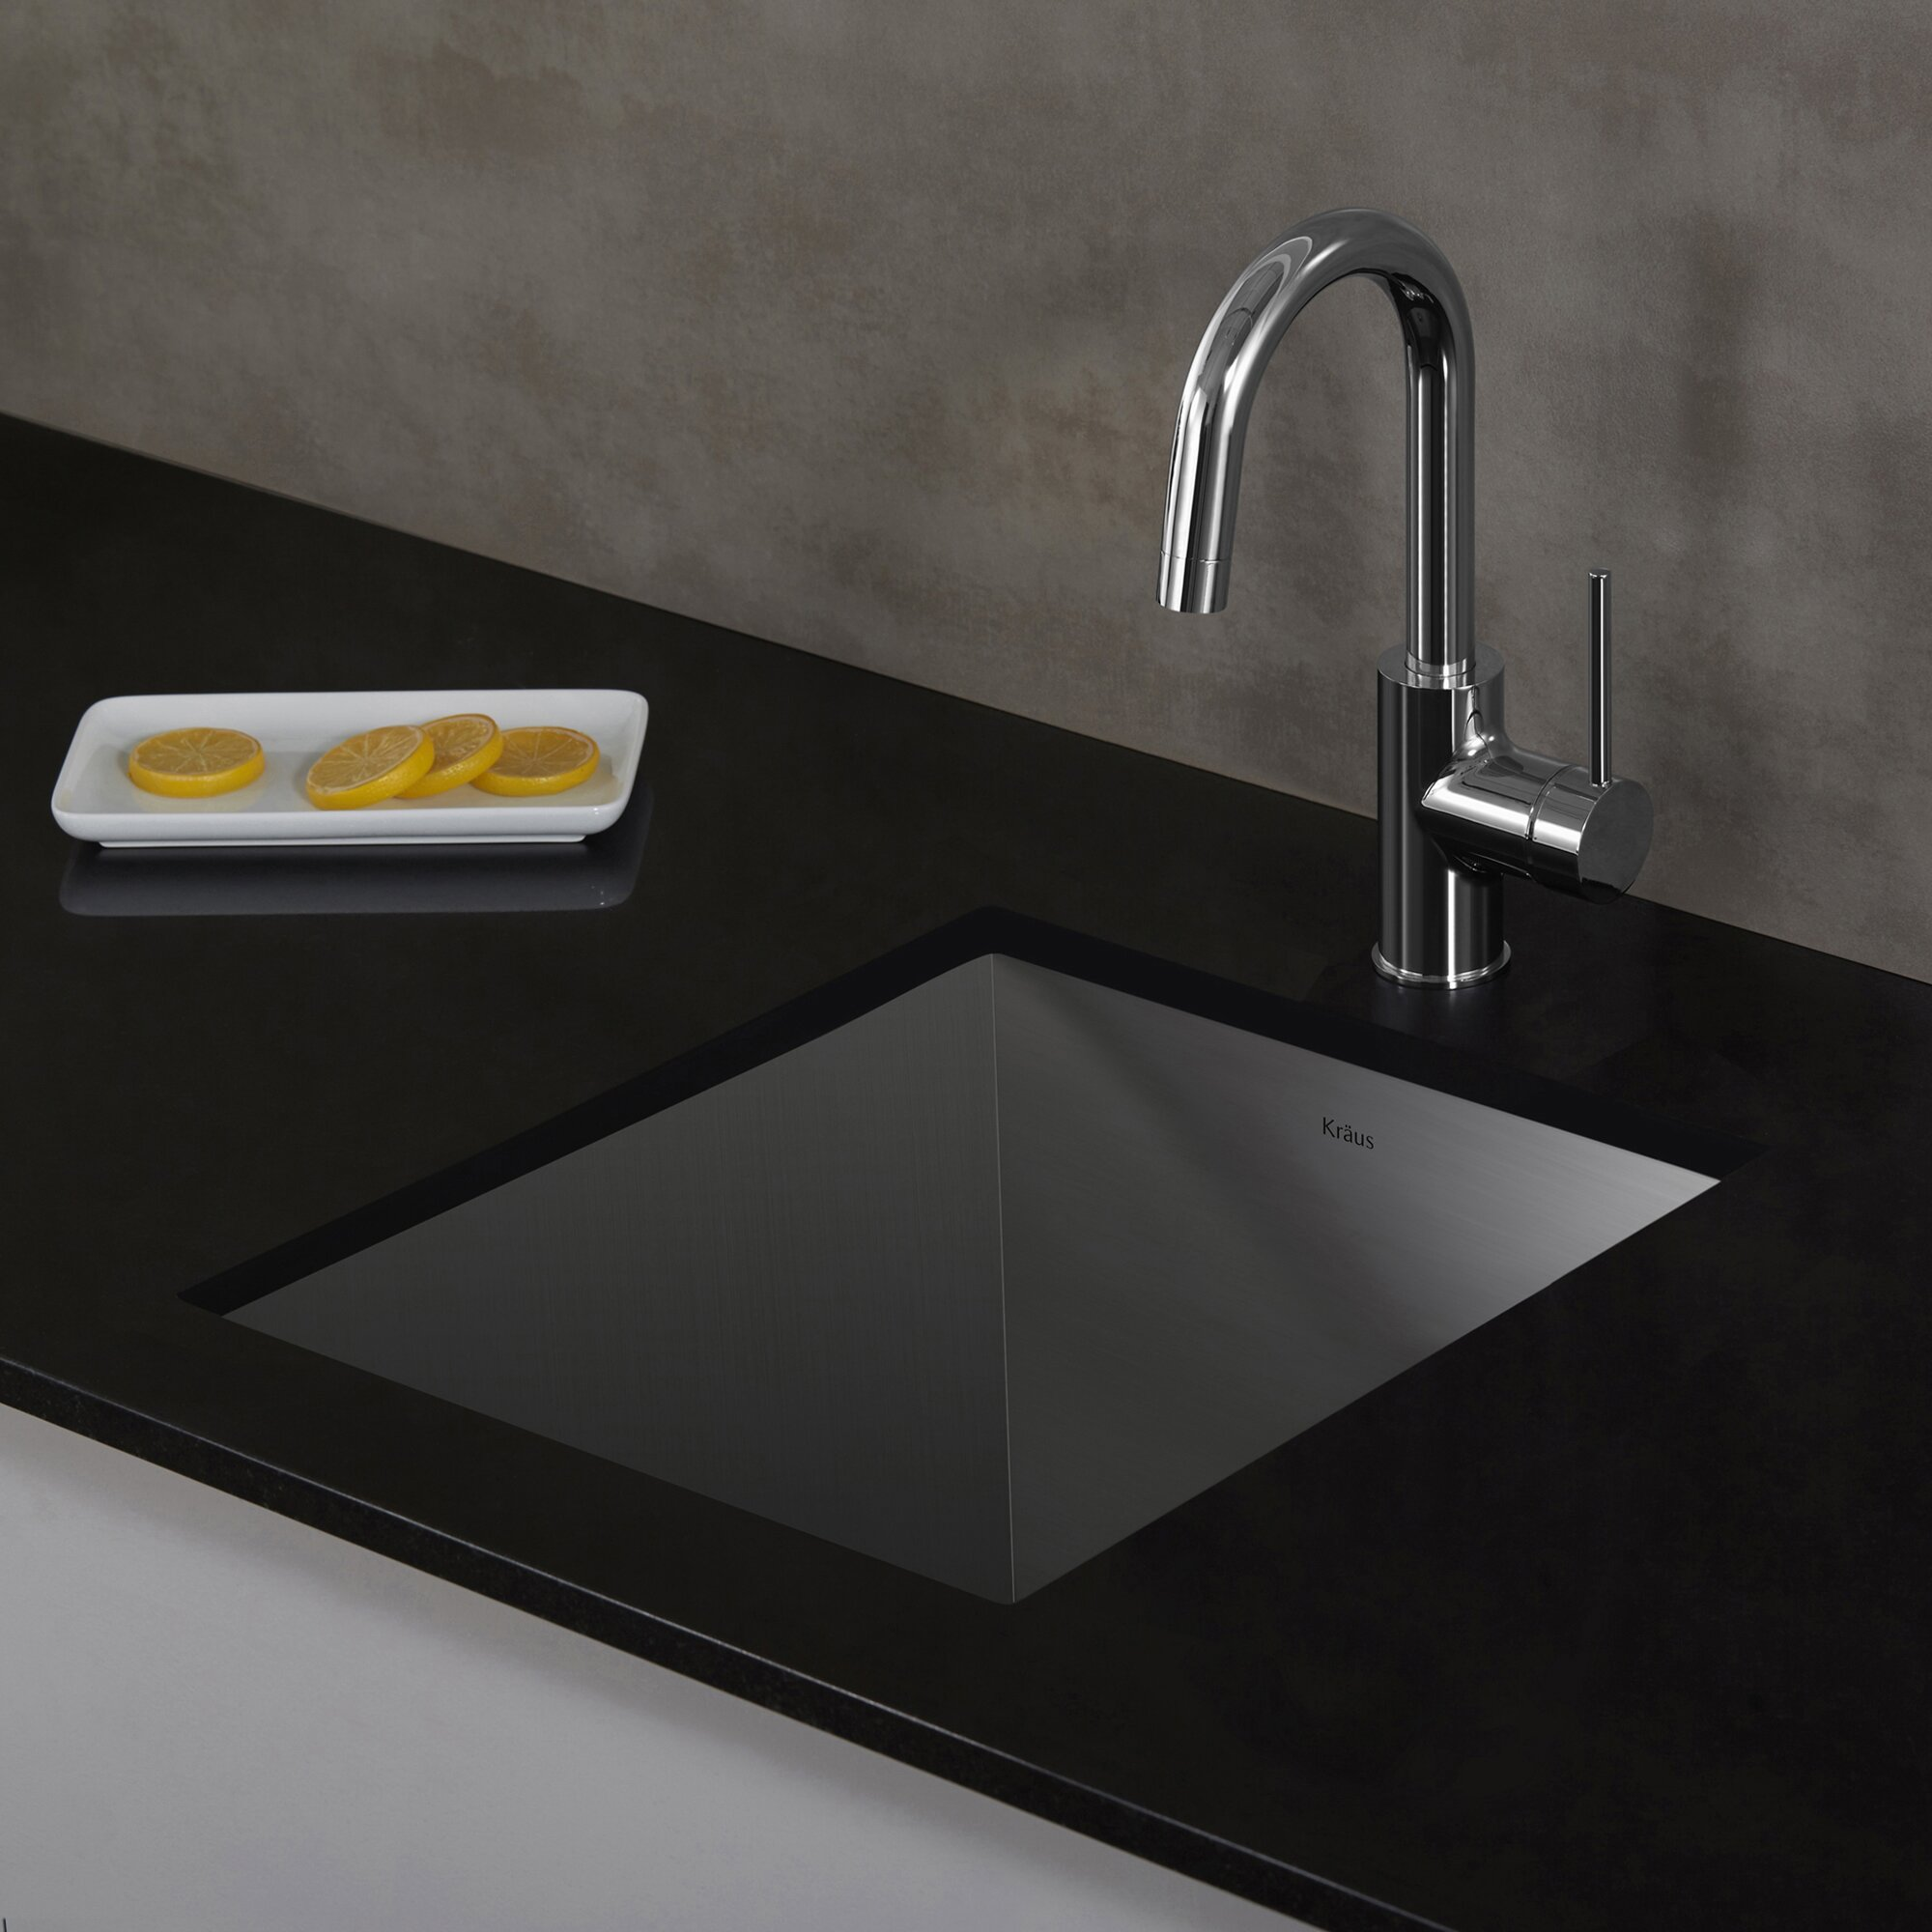 ... Handmade Undermount Single Bowl Stainless Steel Bar Sink Wayfair